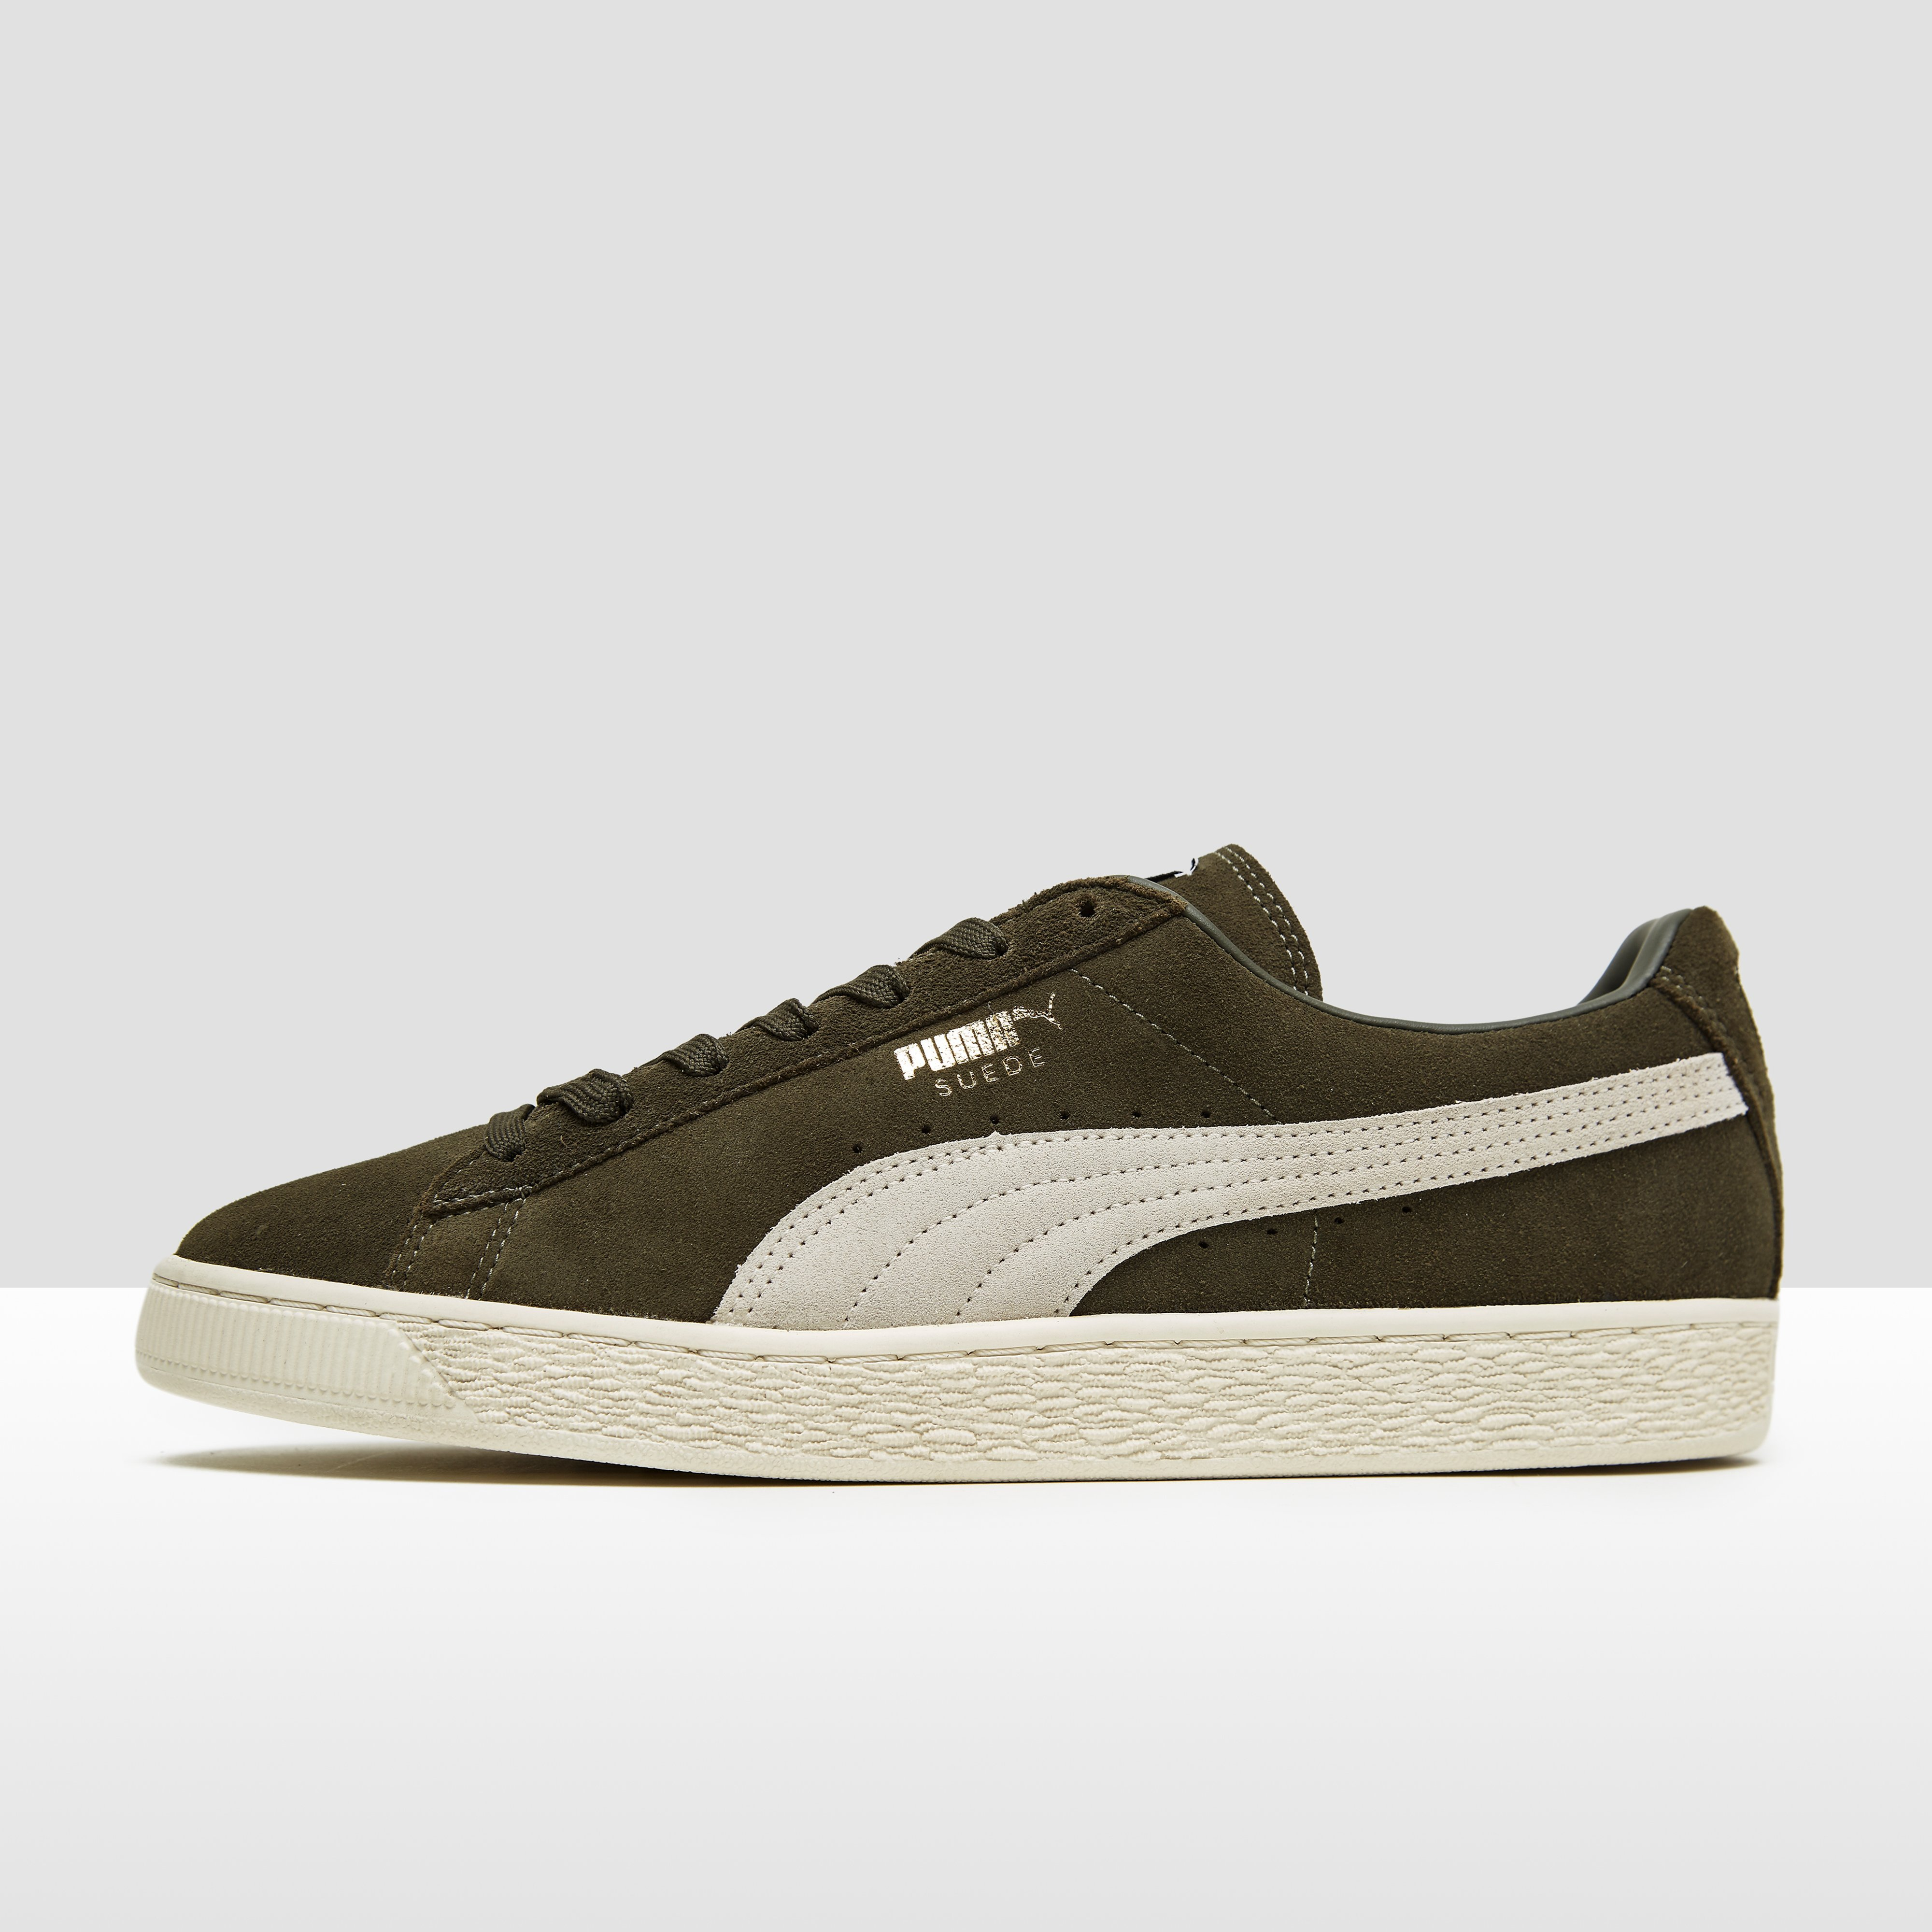 Puma Suede Classic + - Formateurs Vert zghwzdY1